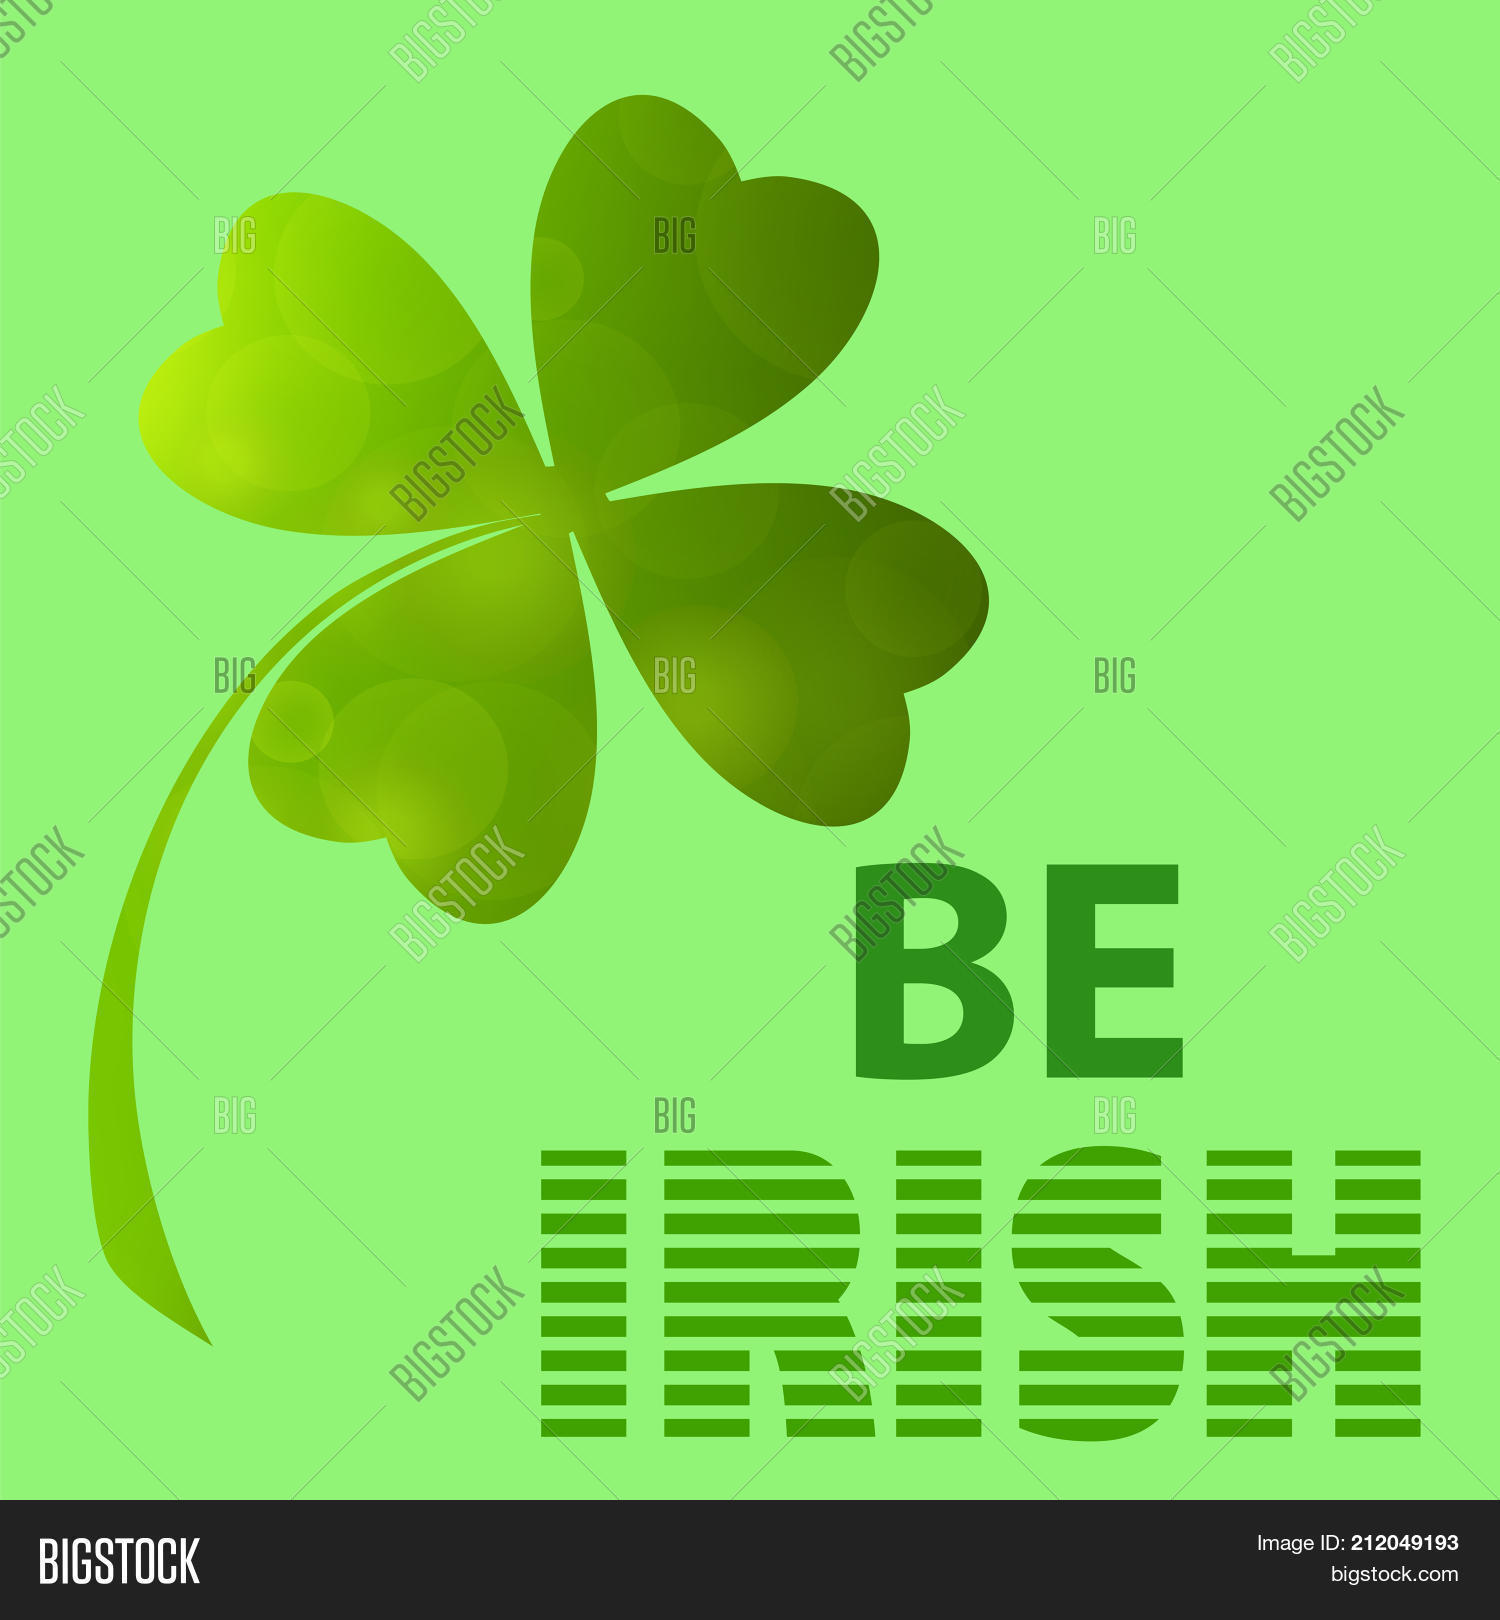 Four Leaf Clover Image Photo Free Trial Bigstock